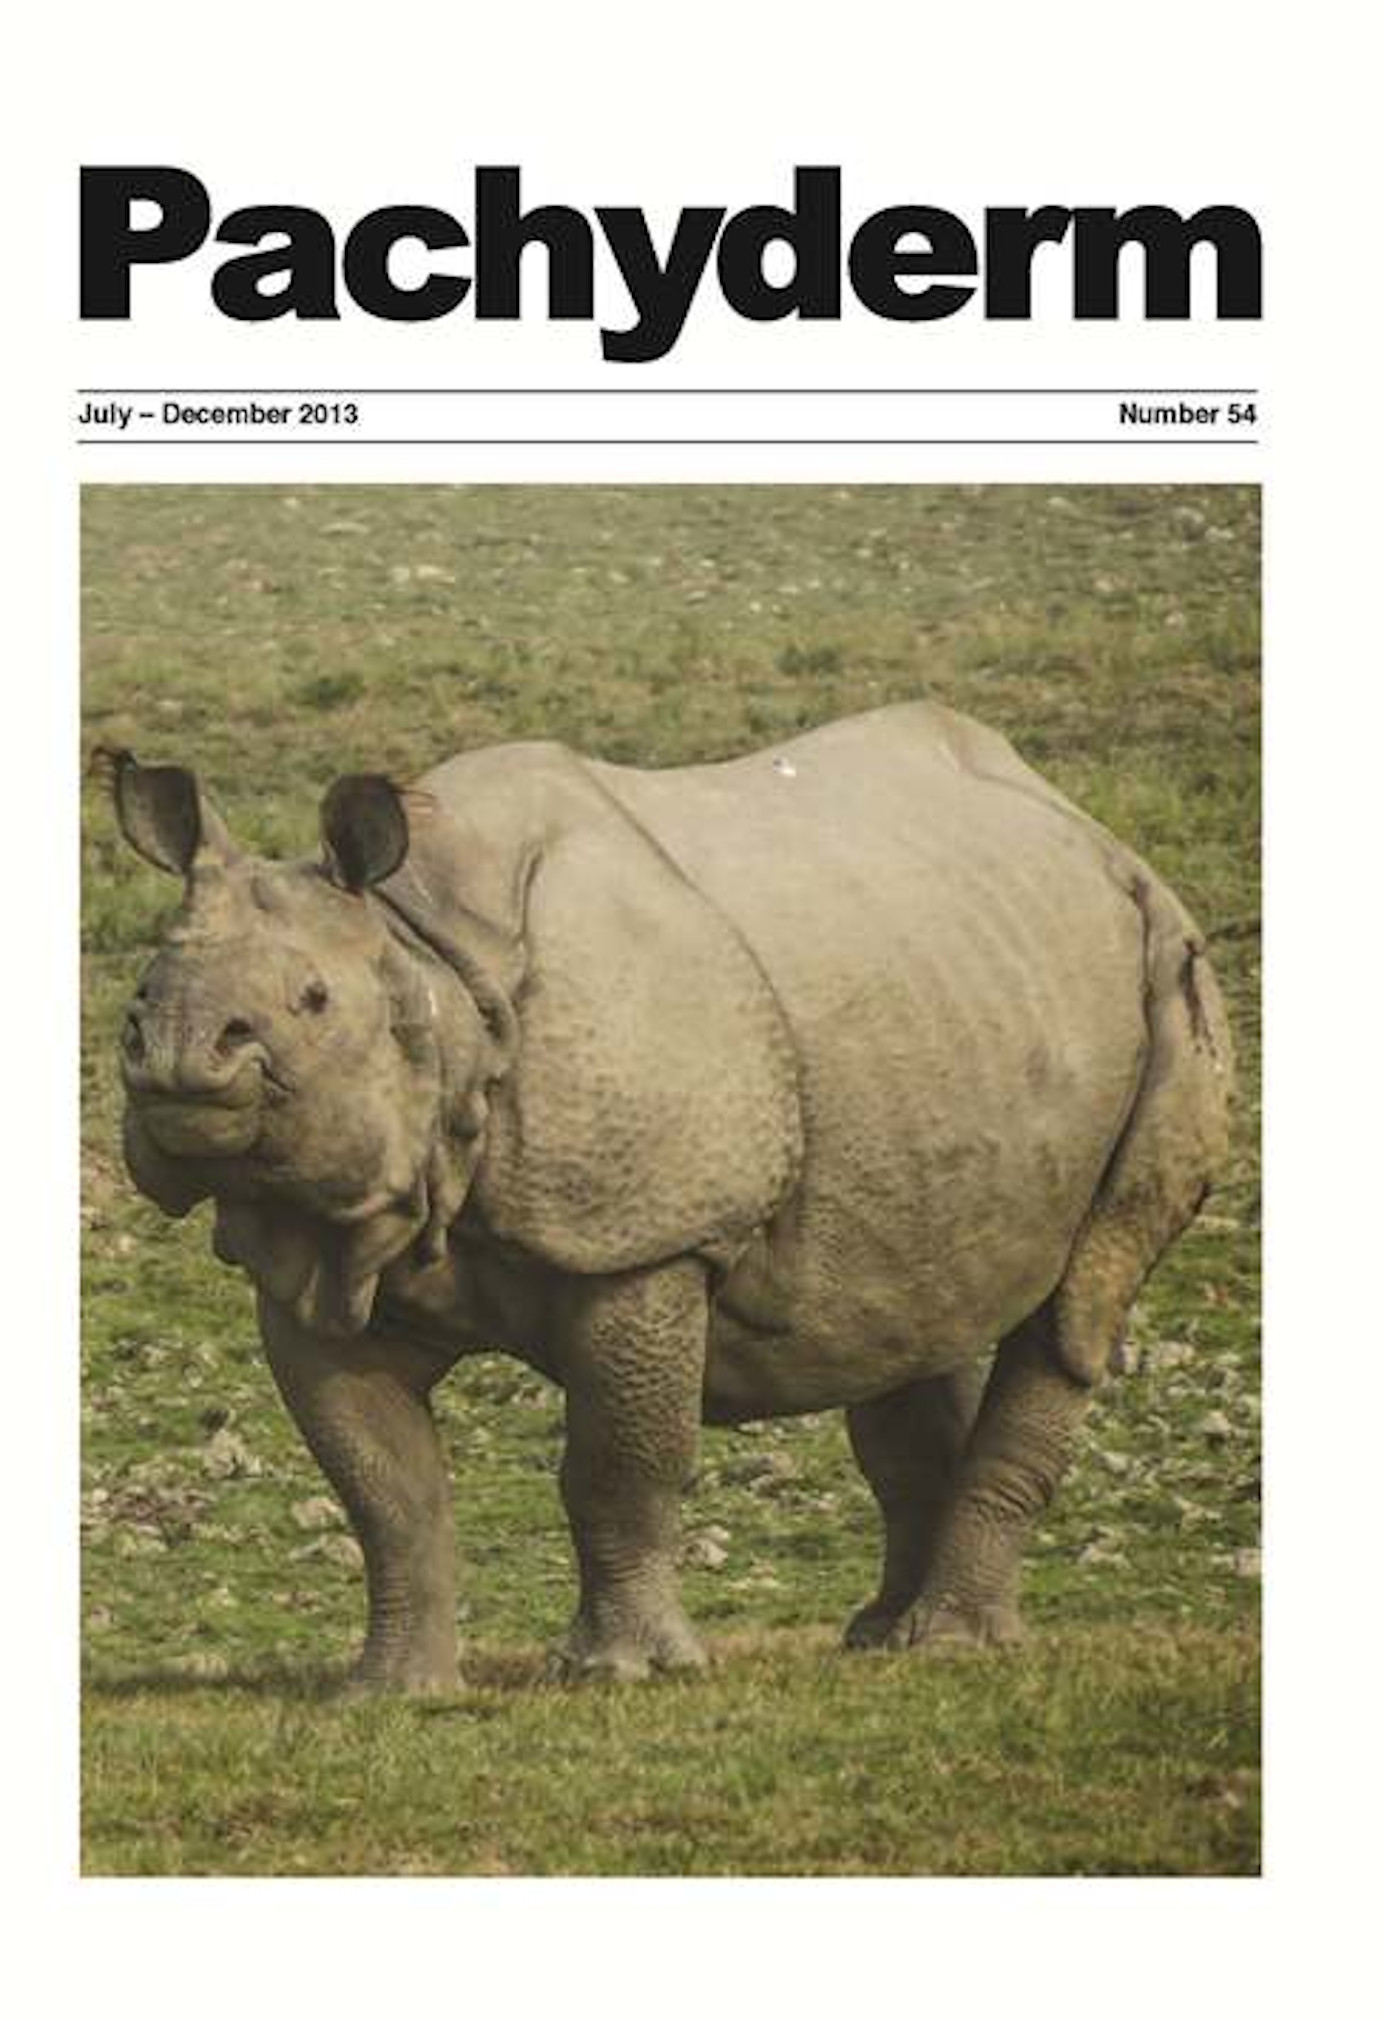 Cover: The greater one-horned rhino in Kaziranga National Park, India. © Bibhab K. Talukdar